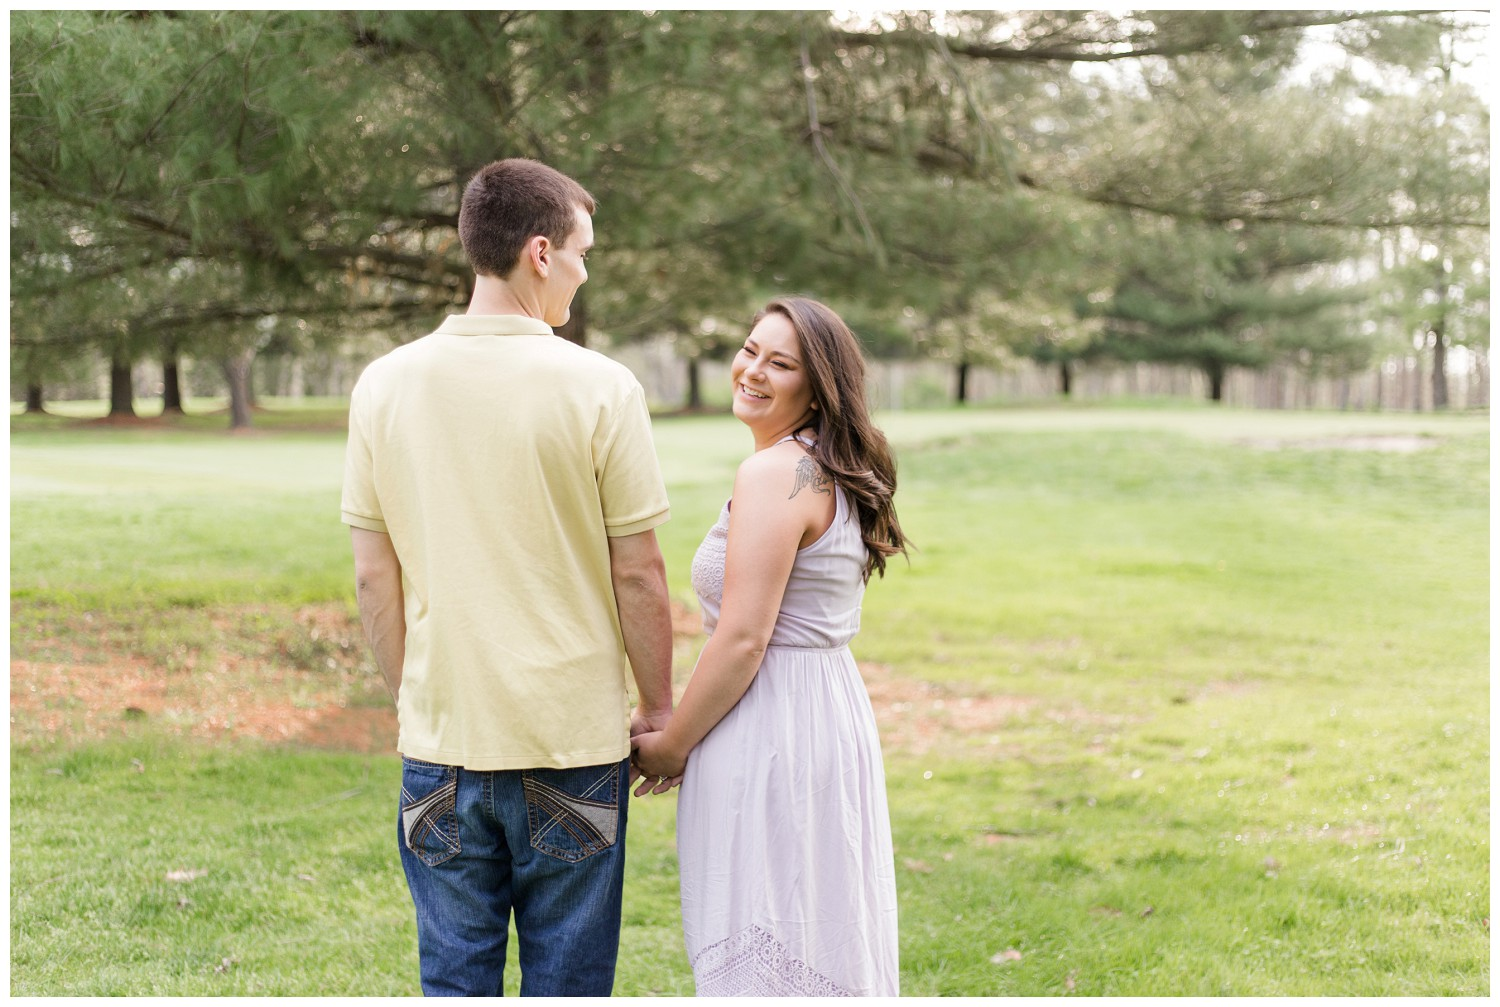 belwood-country-club-engagement-session_0012.jpg